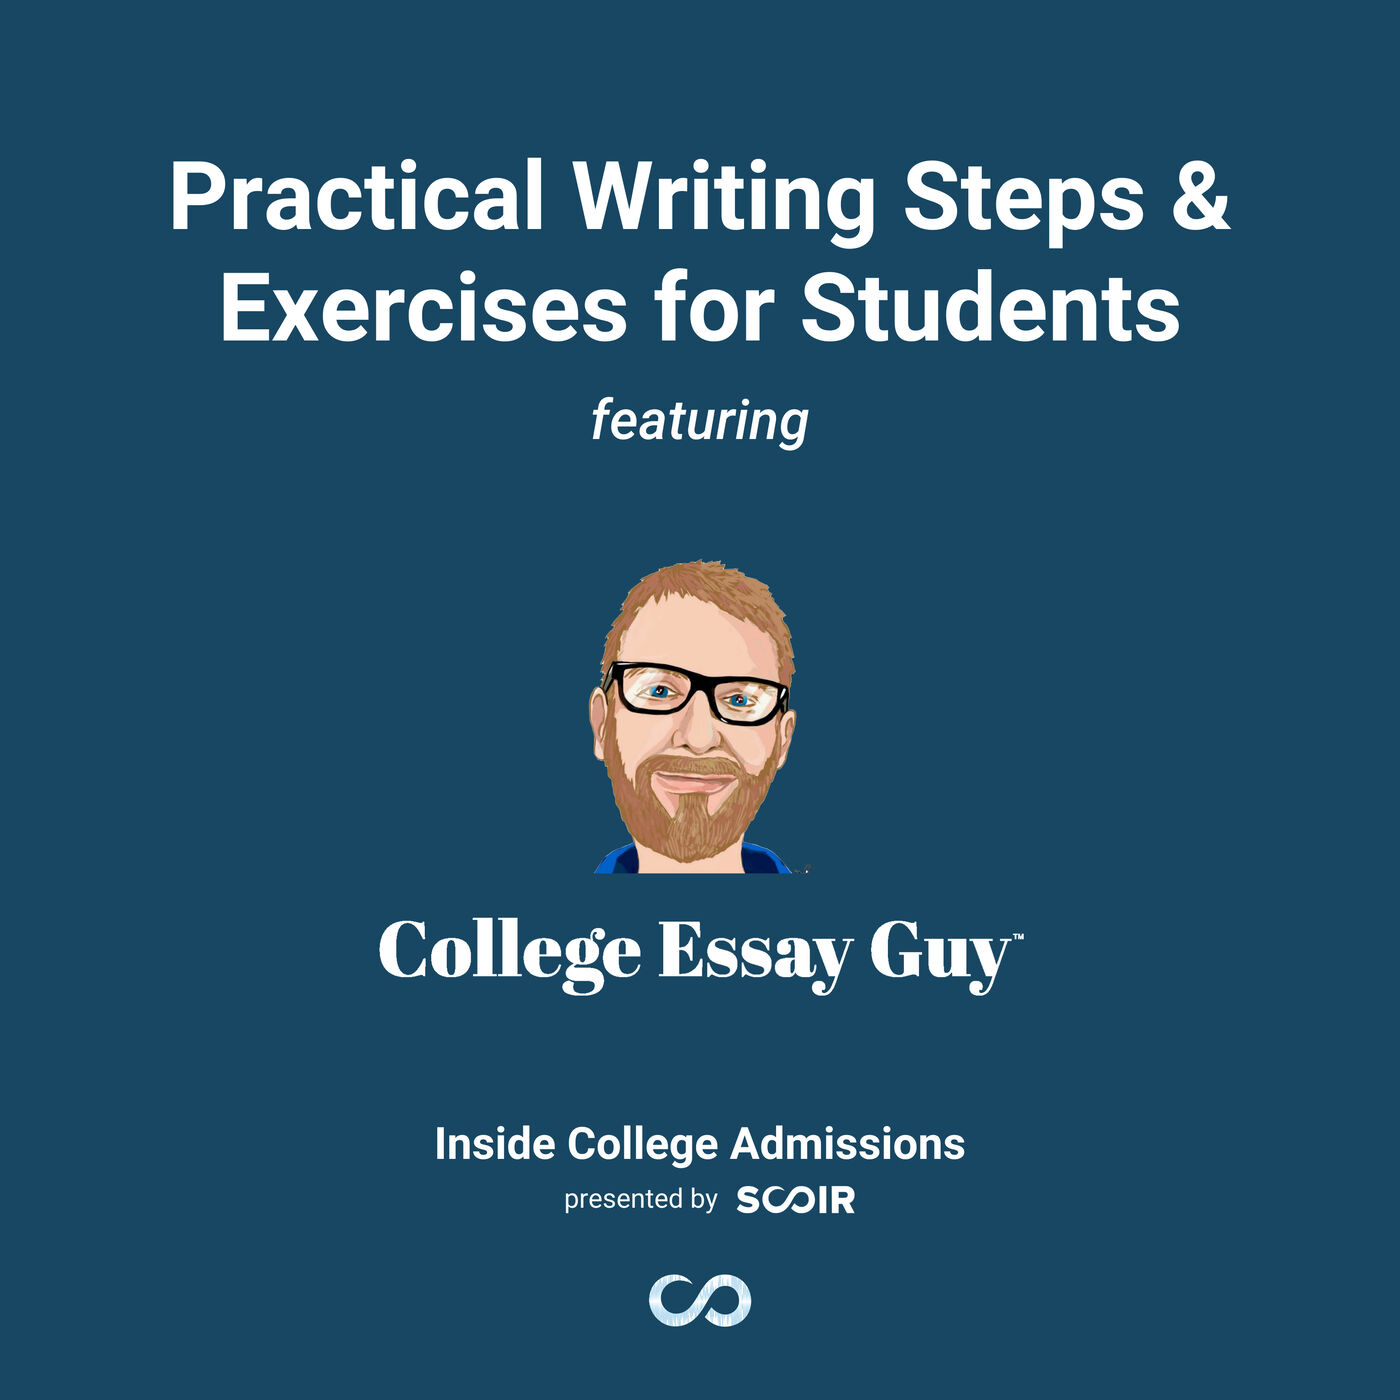 Practical Writing Steps & Exercises for Students featuring The College Essay Guy!